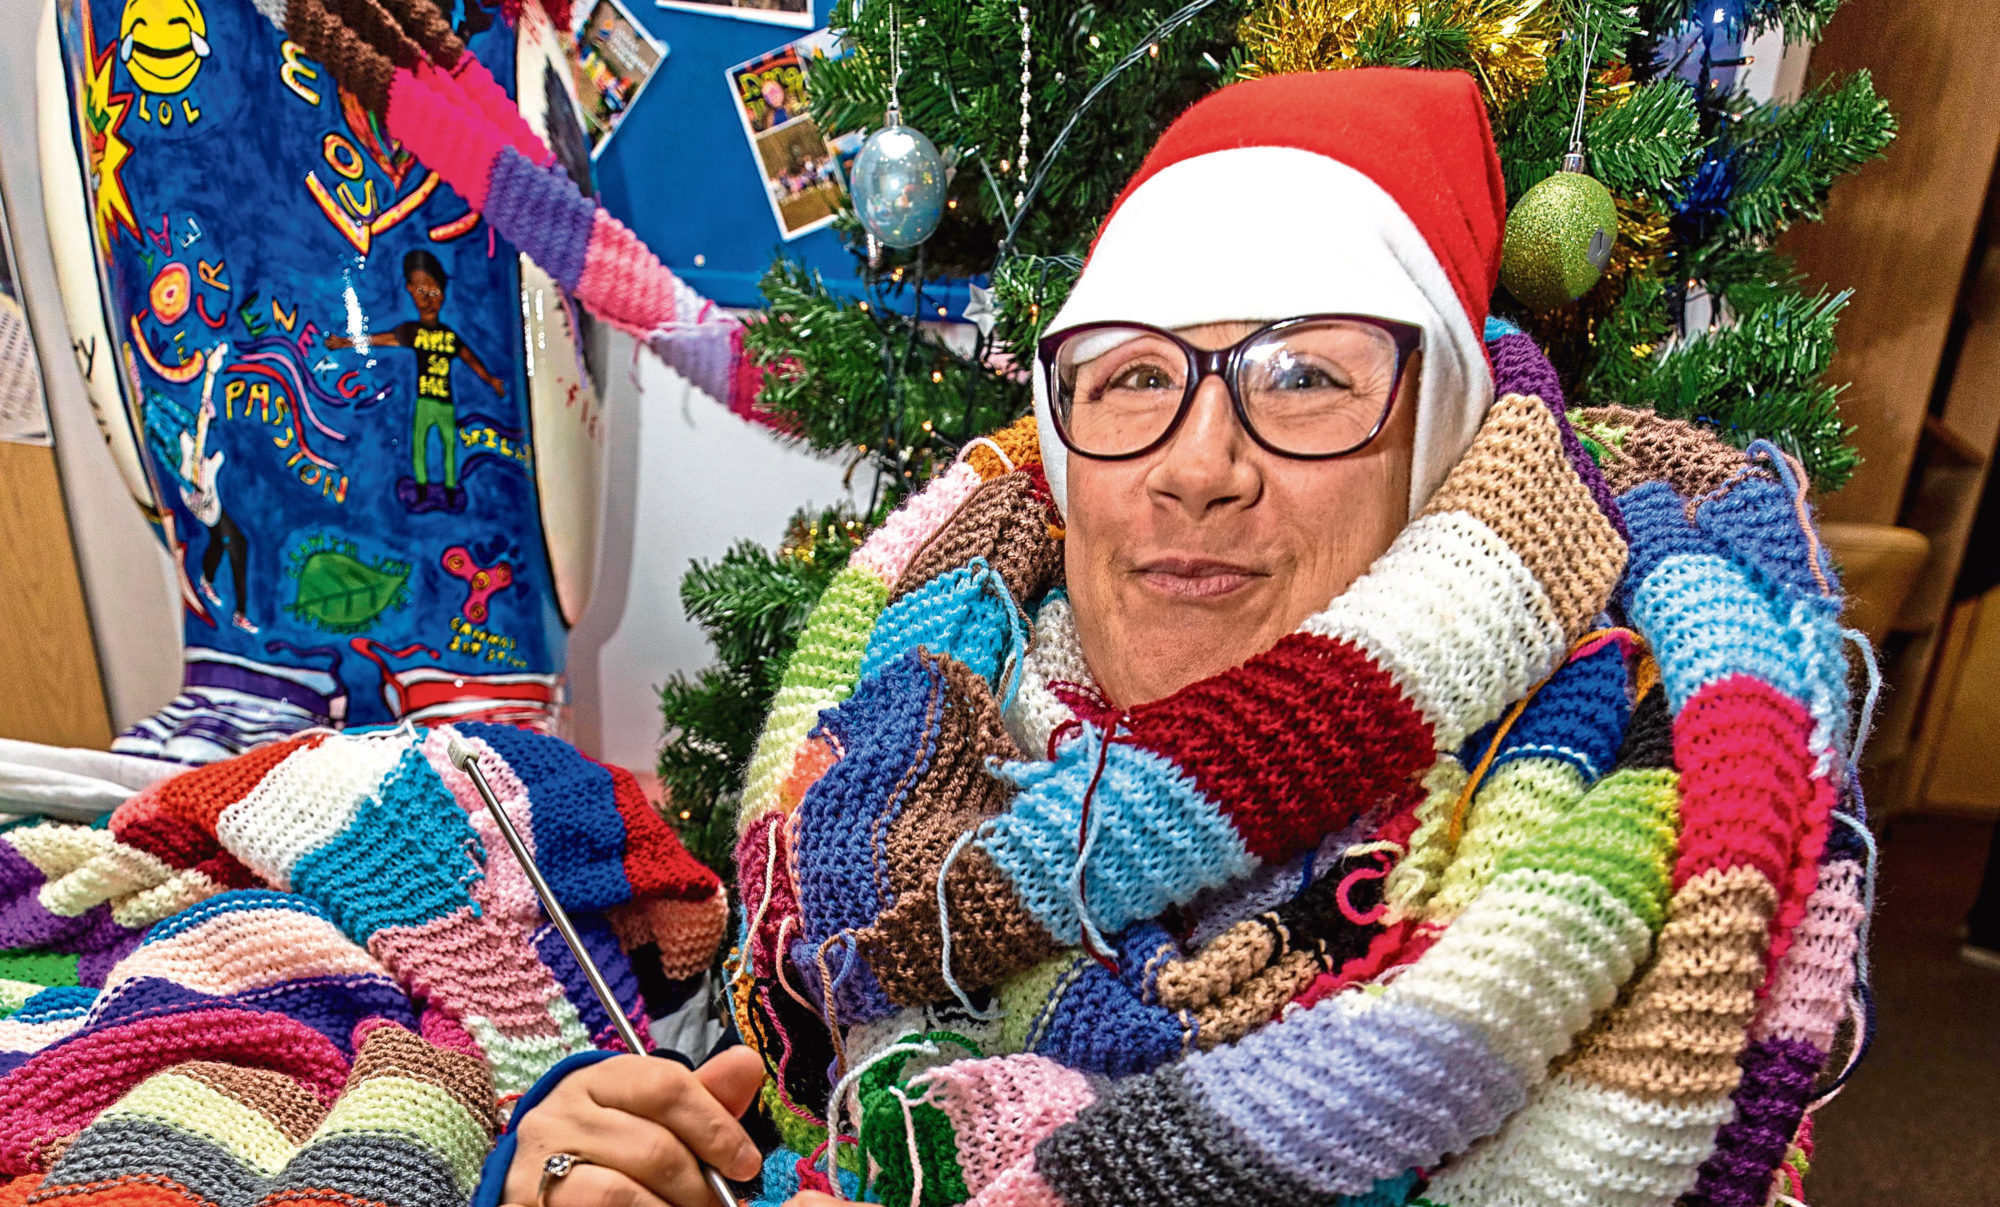 Tina Poynter is hoping to break the world record for longest knitted scarf